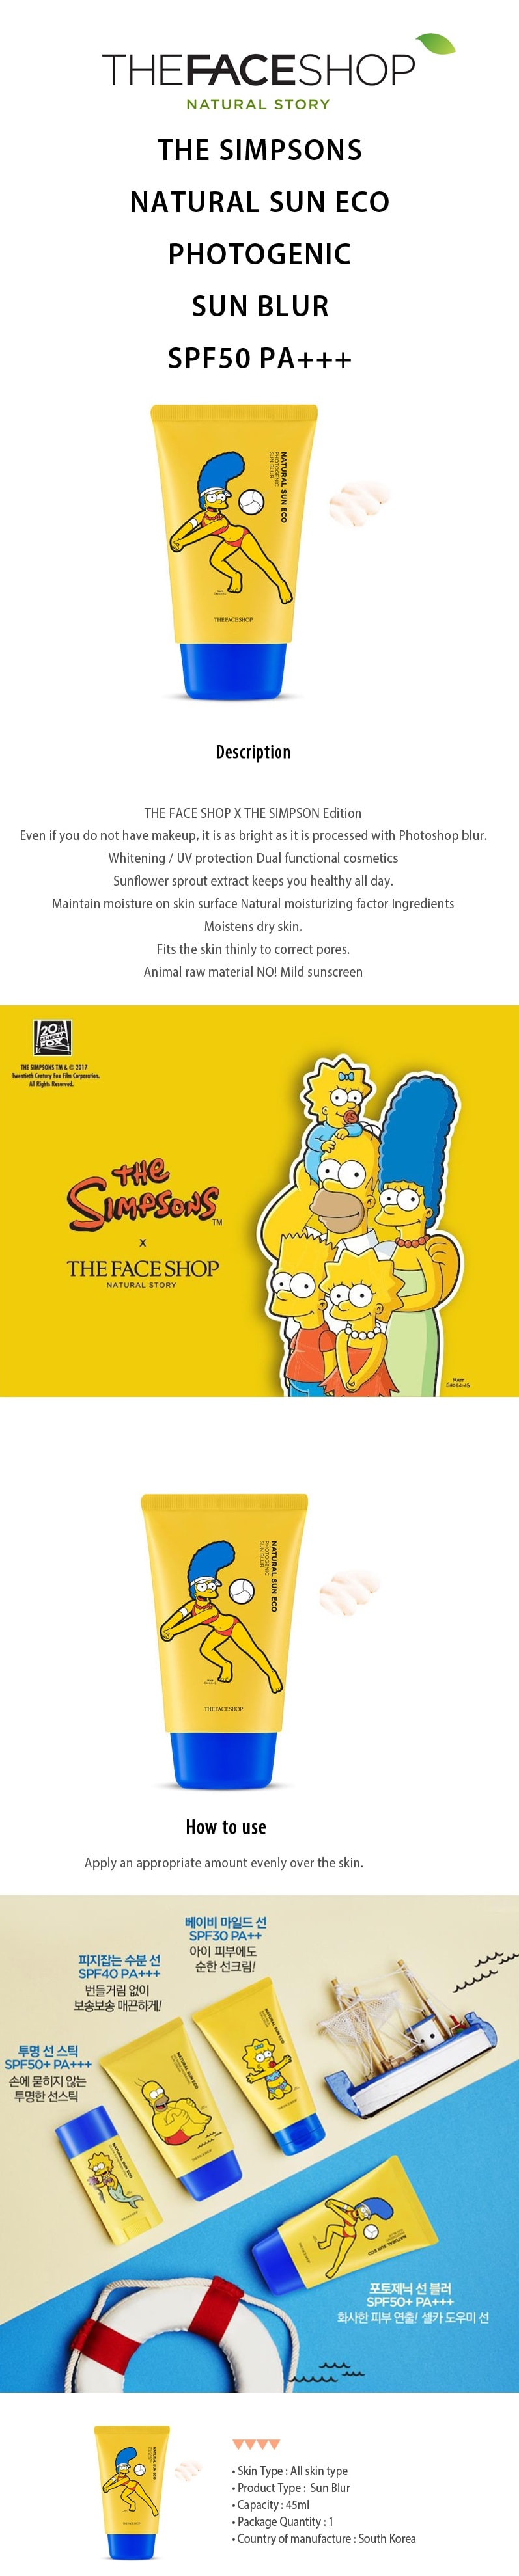 The Face Shop The Simpsons Sun Eco Photogenic Sun Blur SPF50/PA+++